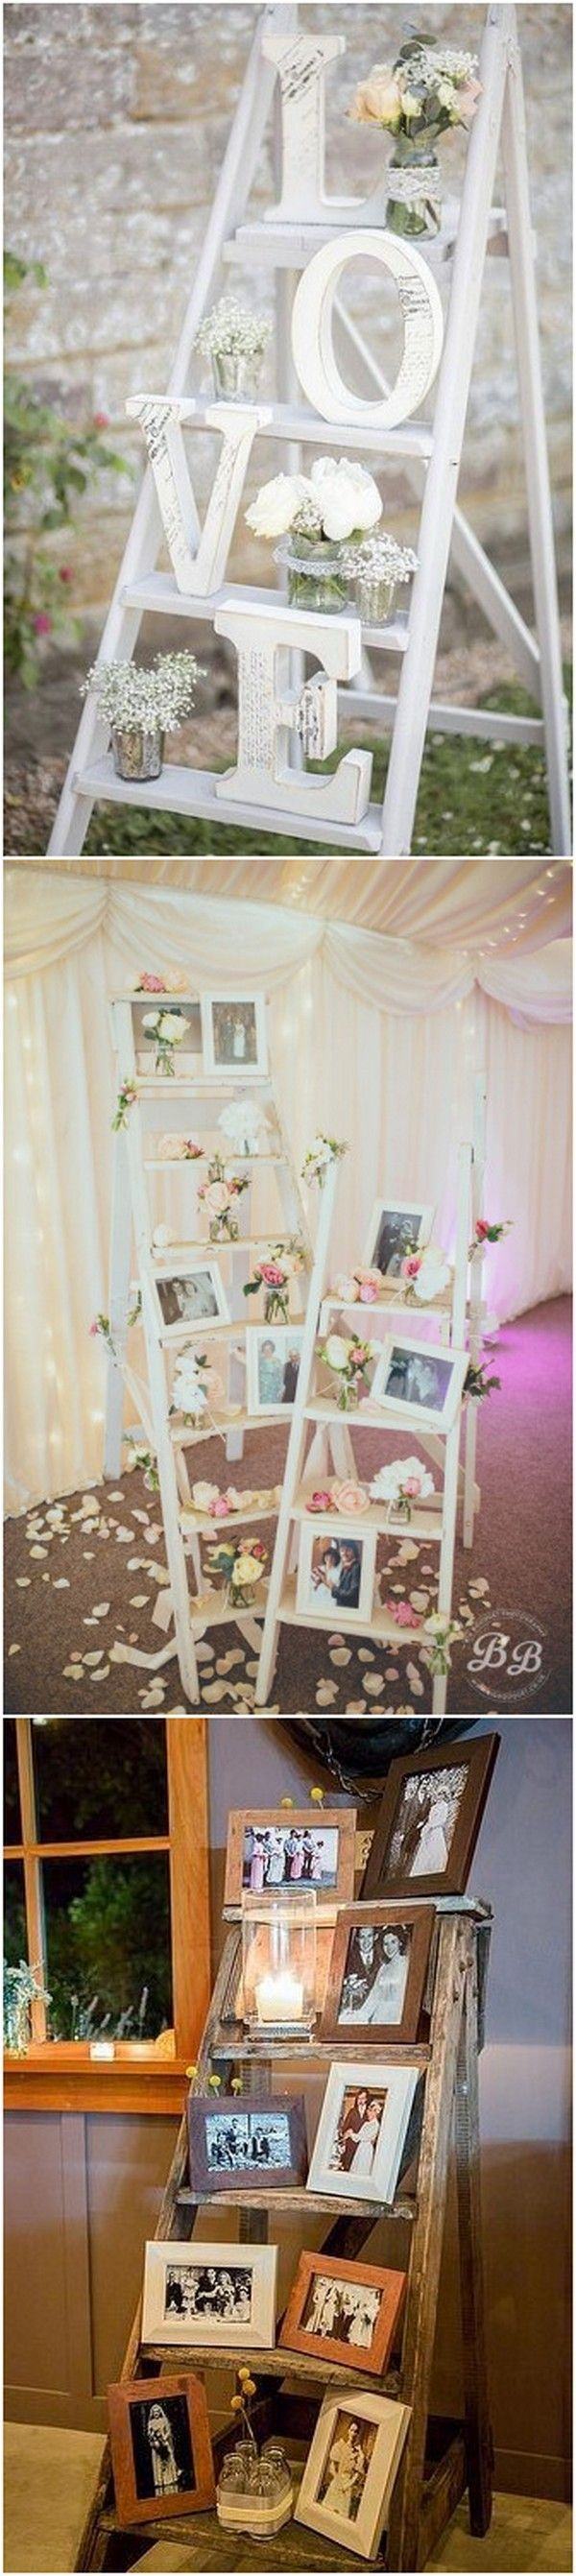 vintage decoration ideas with ladders